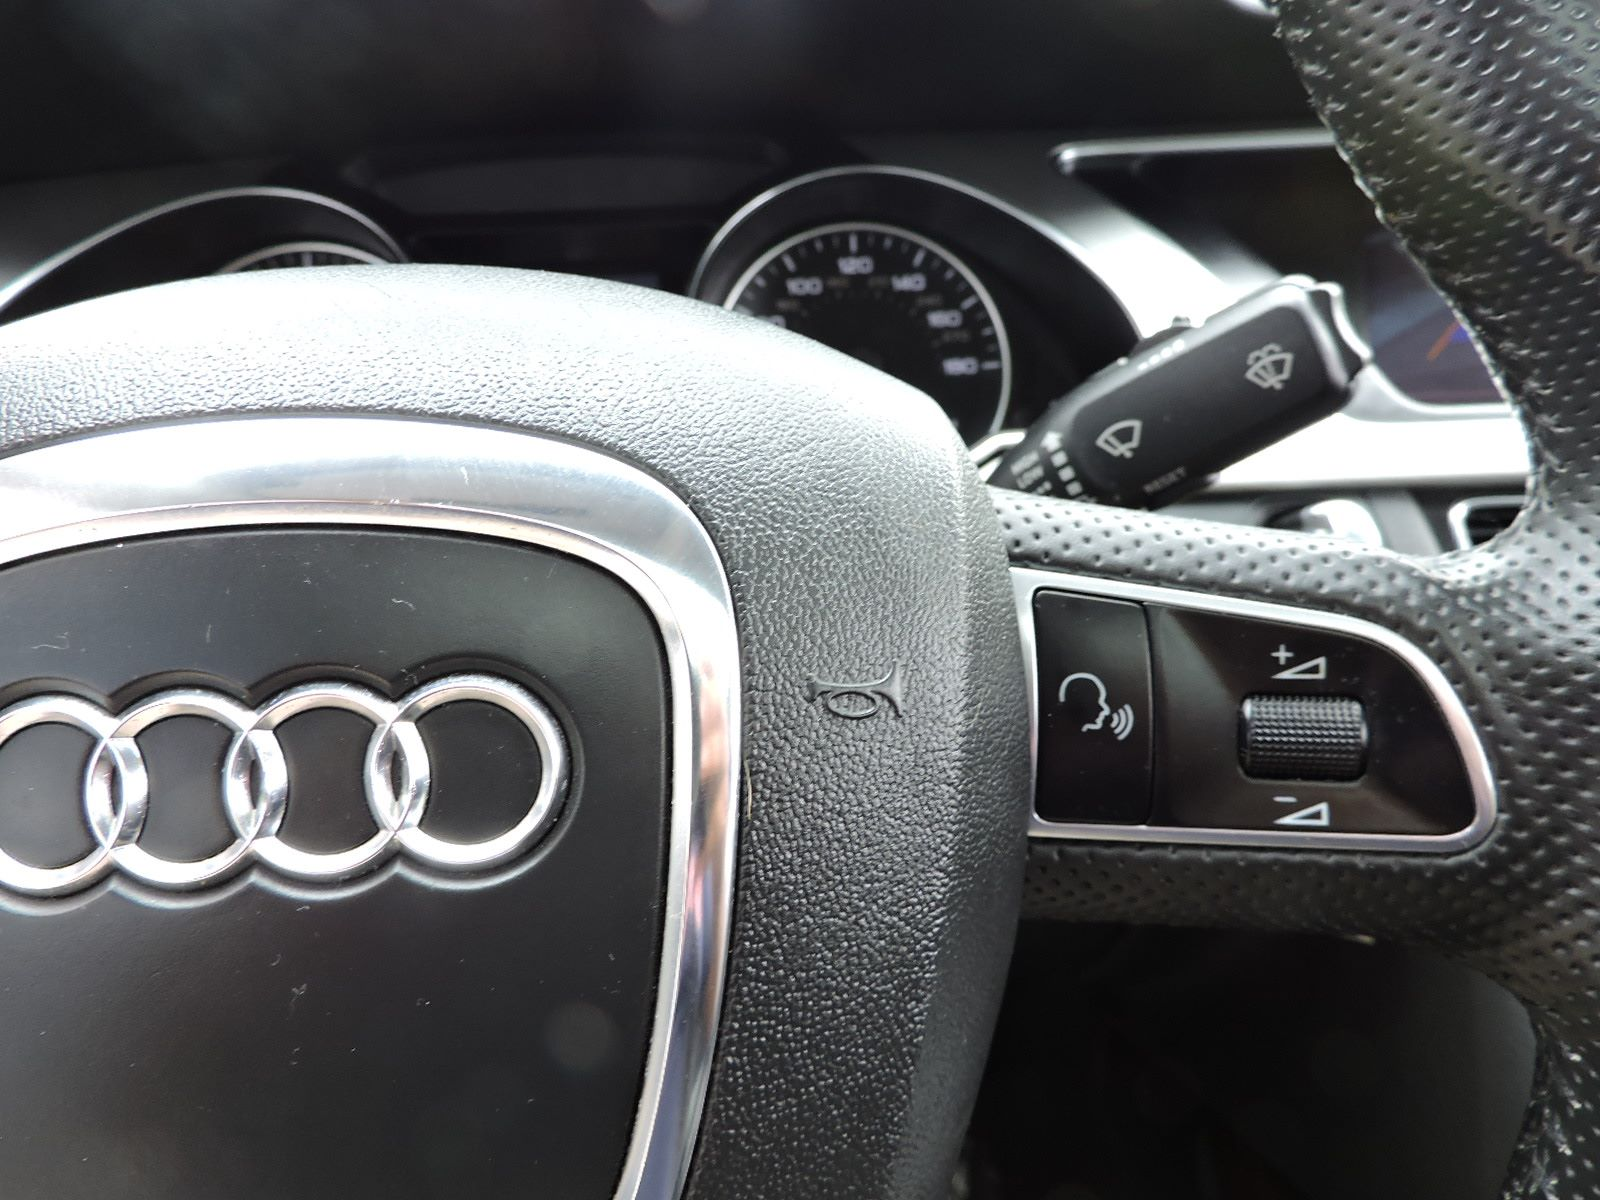 2010 Audi A5 - 2.0T - Quattro - All Wheel Drive - Navigation